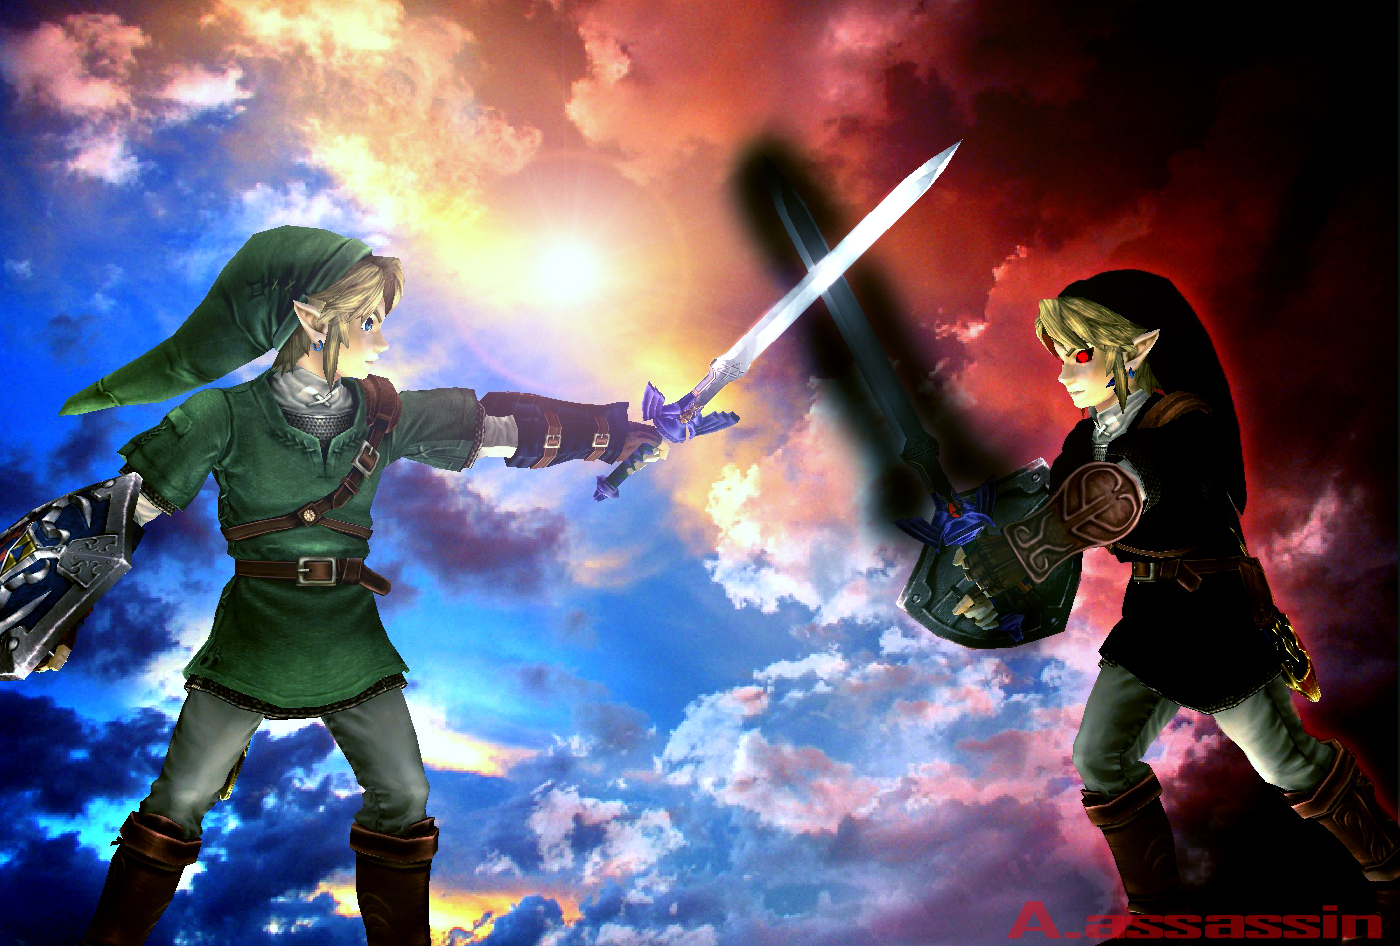 Link vs Dark Link by angelnn 1400x946